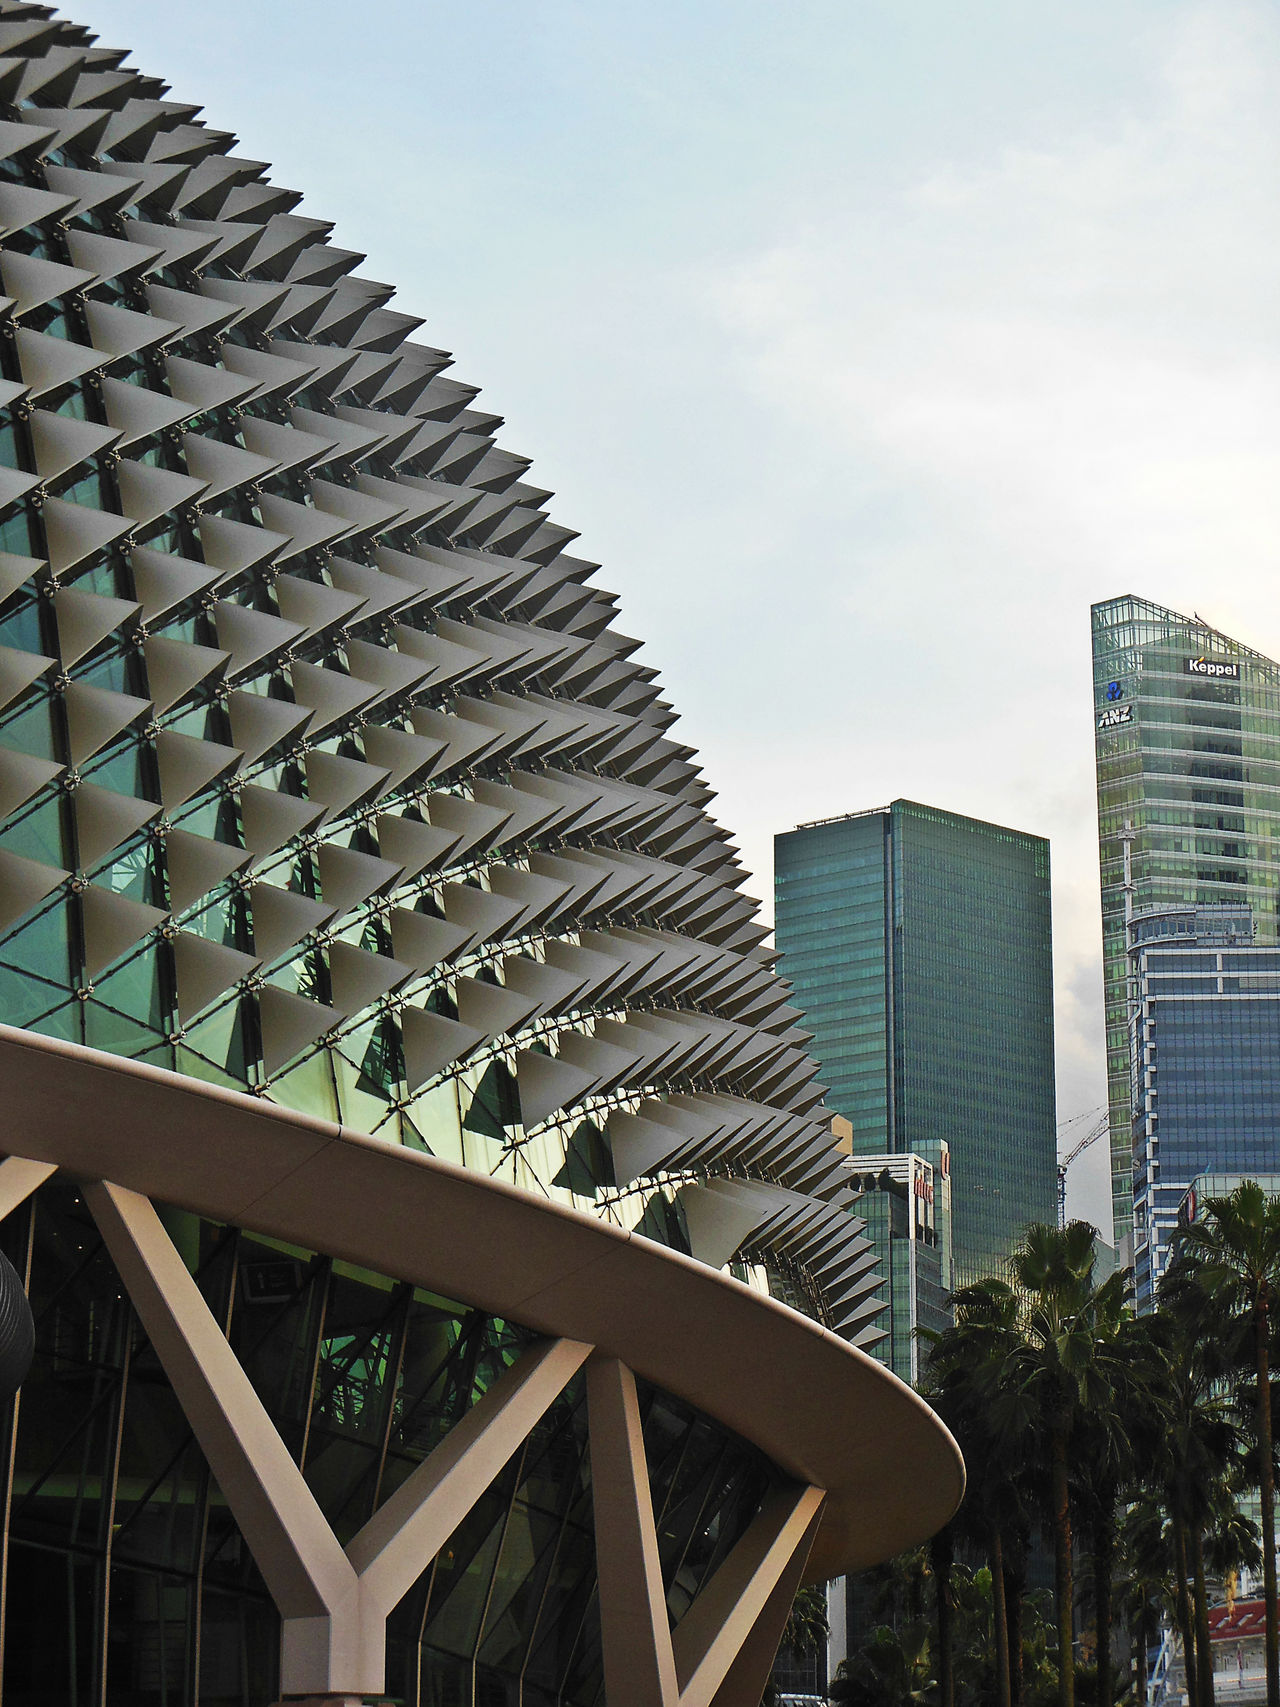 Architecture Building Exterior Dragon Fruit Esplanade Esplanade-theatres On The Bay EyeEm City Photography EyeEm City Shots Low Angle View Singapore View Skyscraper Spiky Unusual Architecture